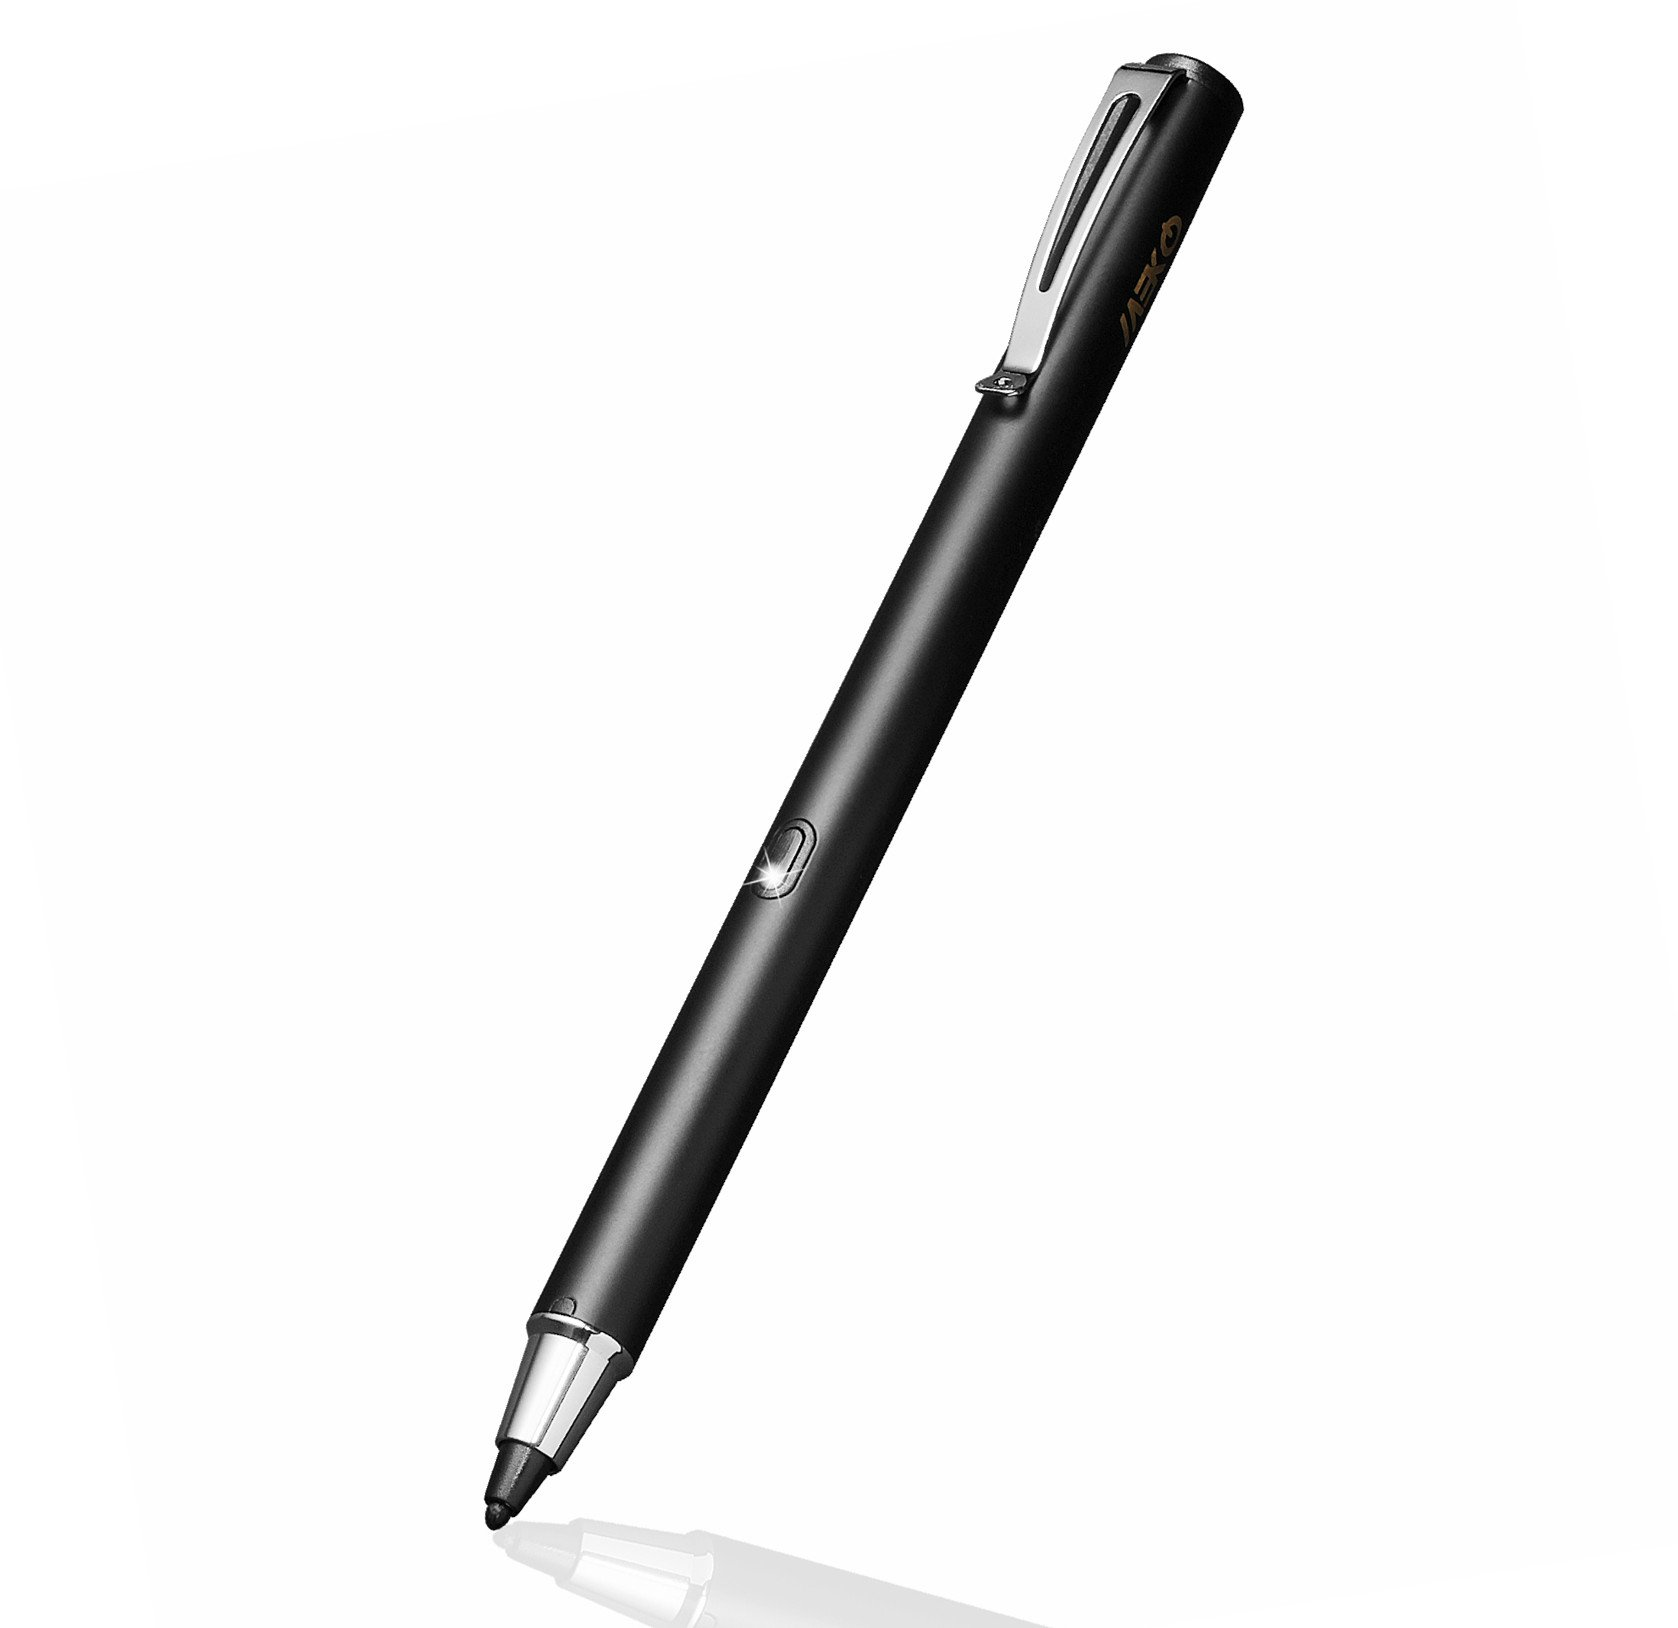 MEKO Stylus Pens Rubber Tip Rechargeable Active Stylus 1.9mm -Perfect for Drawing and Handwriting Only Compatible W/iOS and Andriod Touchscreen Cellphones, Tablets-(Black)